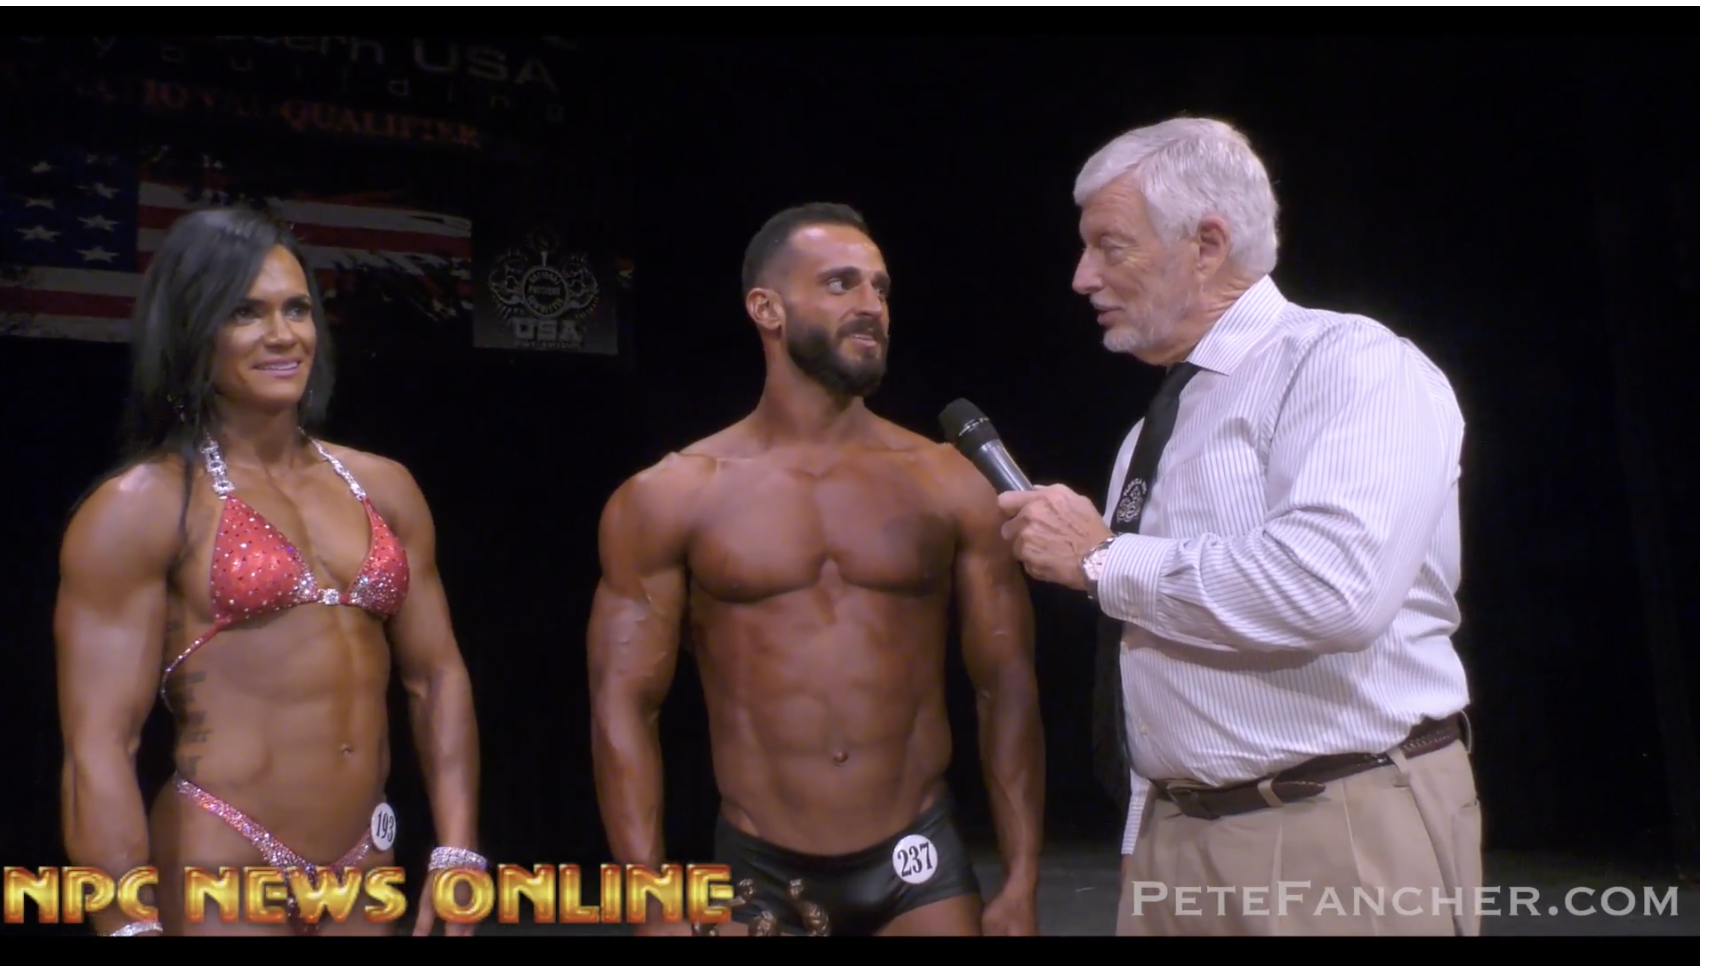 2017 NPC Southeastern USA Overall Winners Interviewed By Pete Fancher